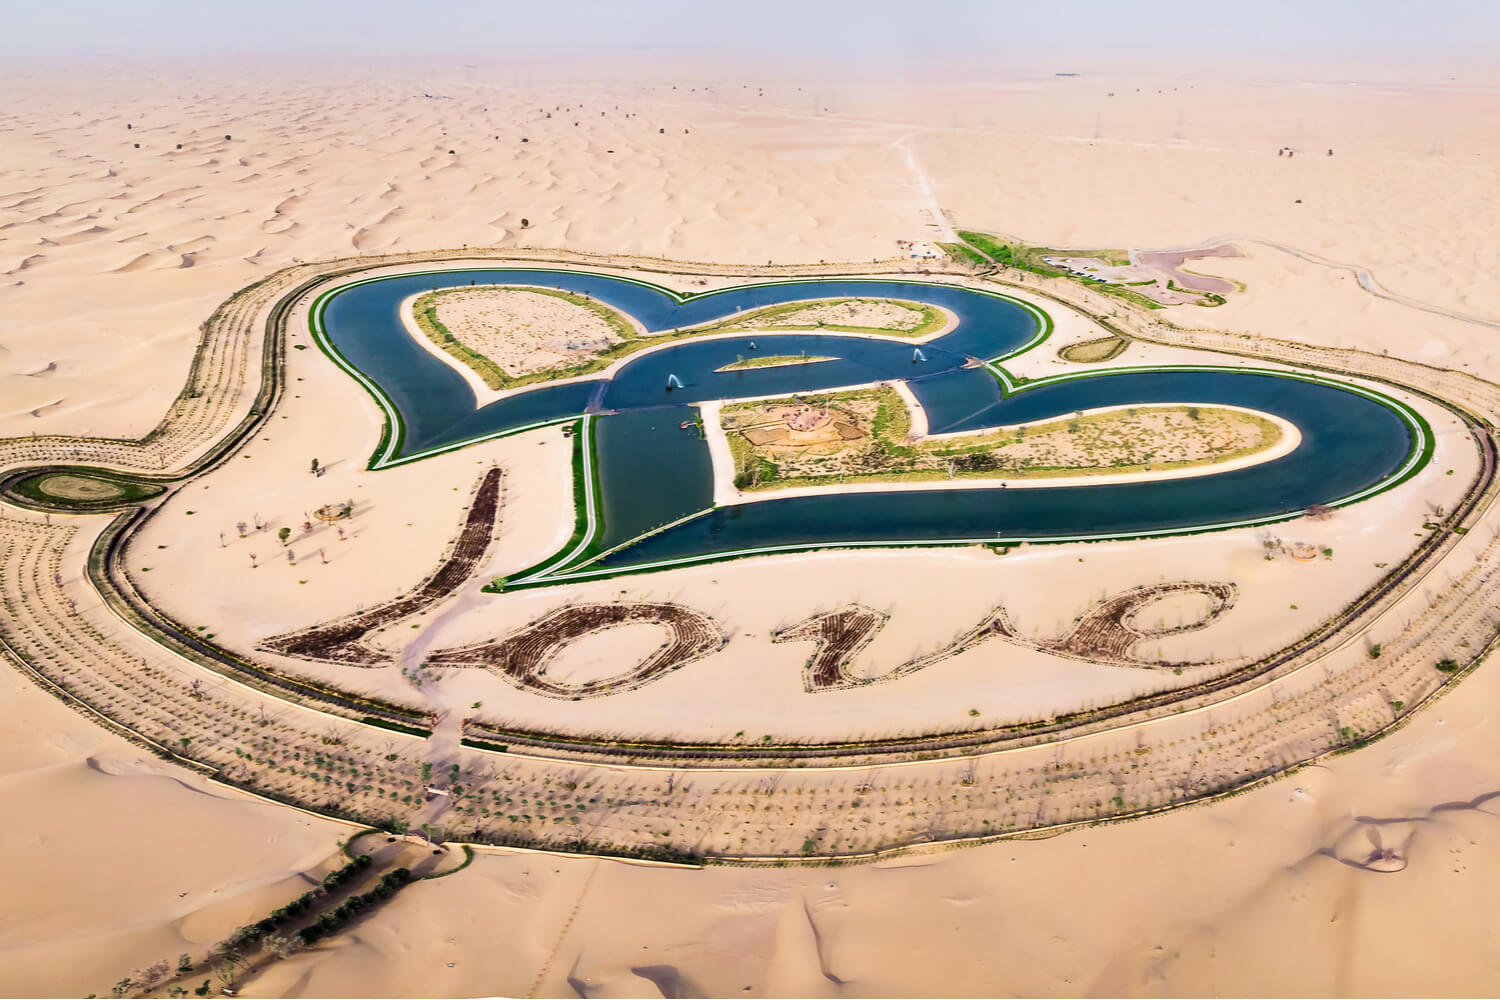 LOVE LAKE DUBAI